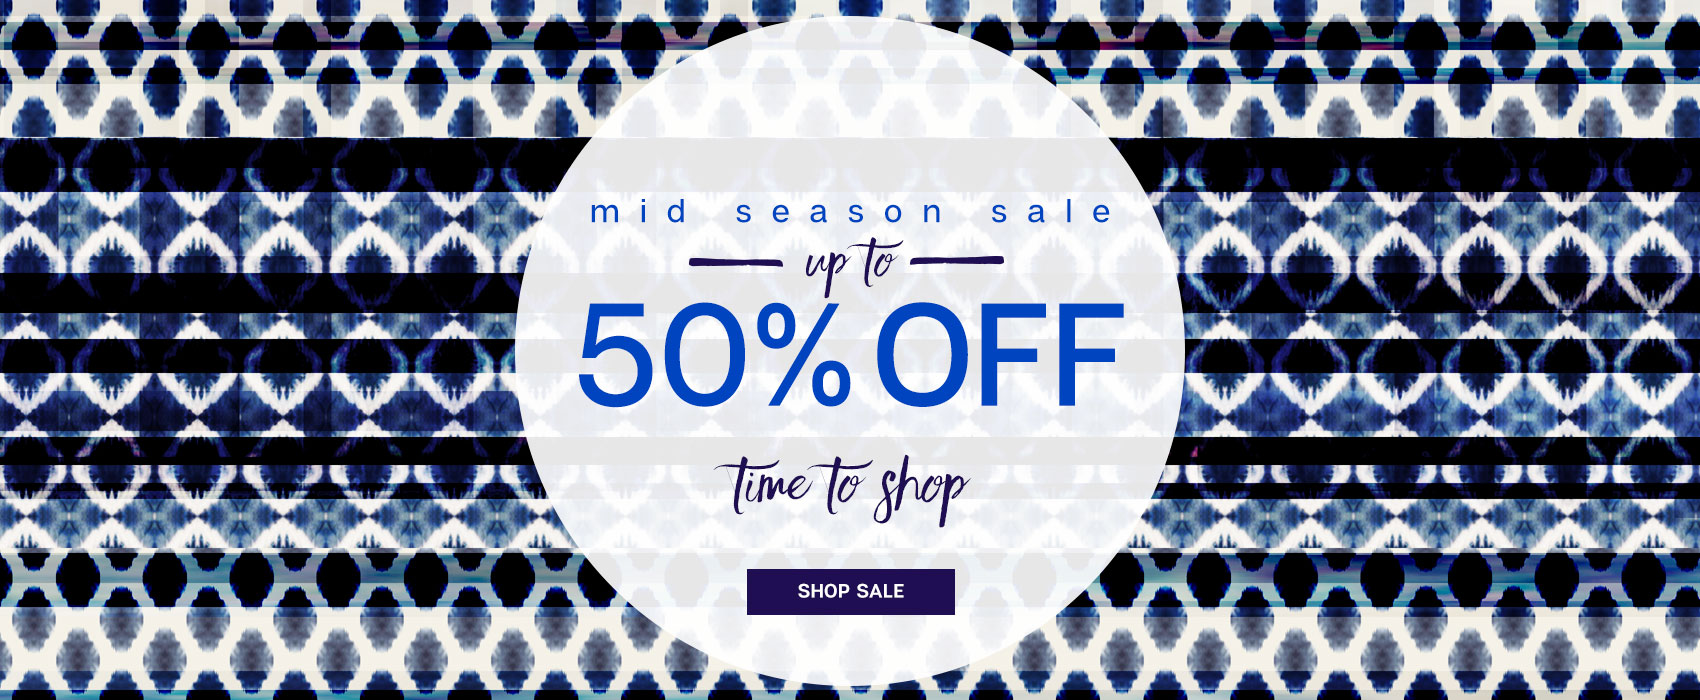 Dash: Mid Season Sale up to 50% off